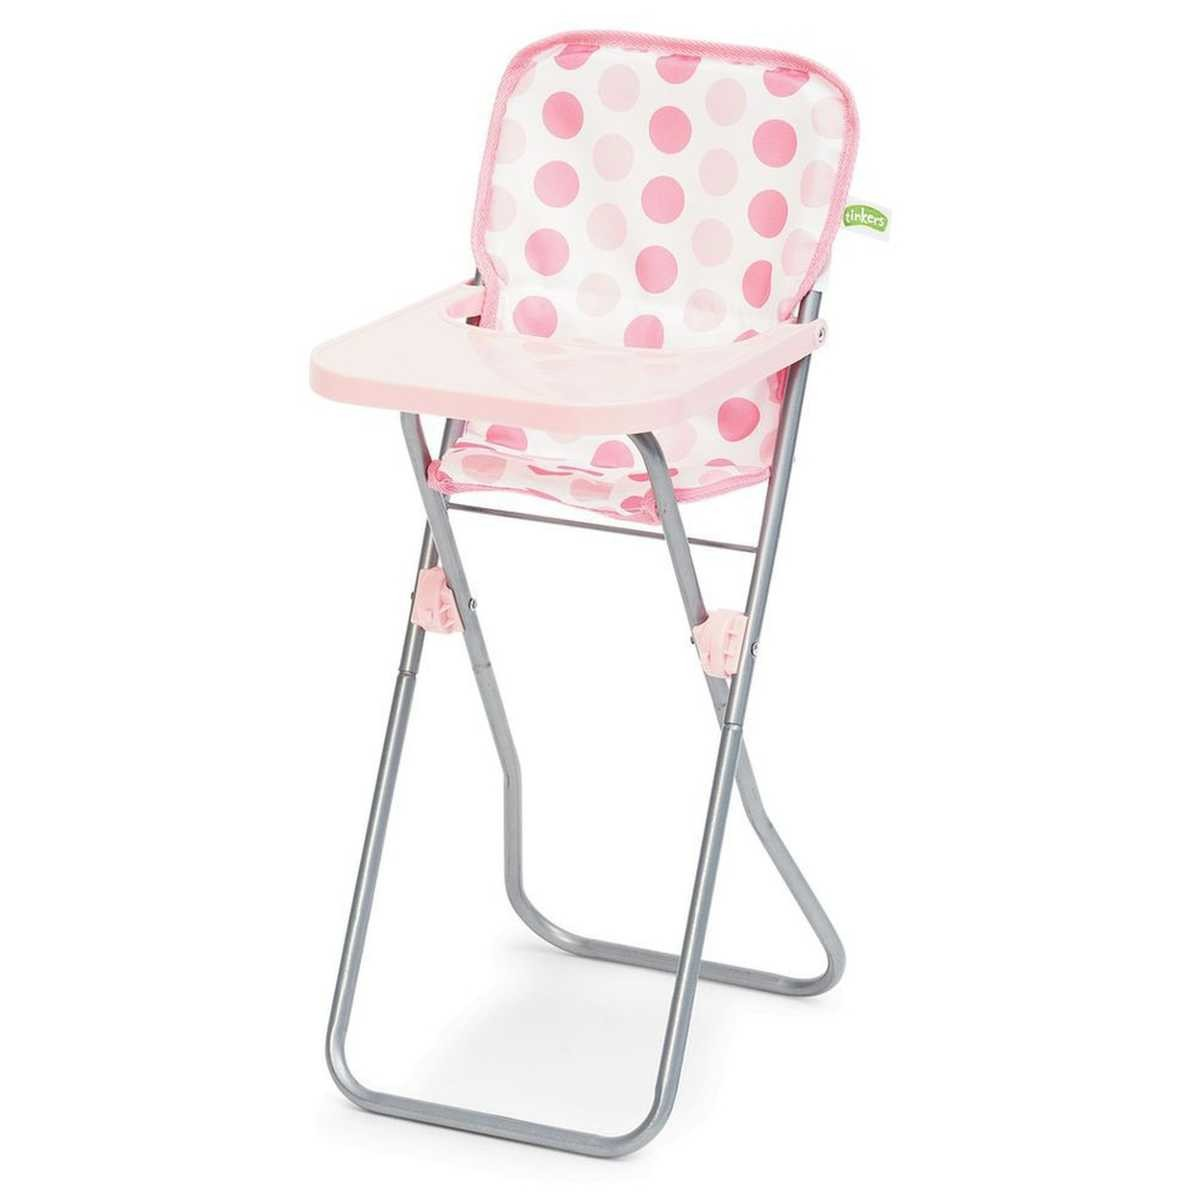 high chair for dolls heel shoe furniture tinkers doll pink big w